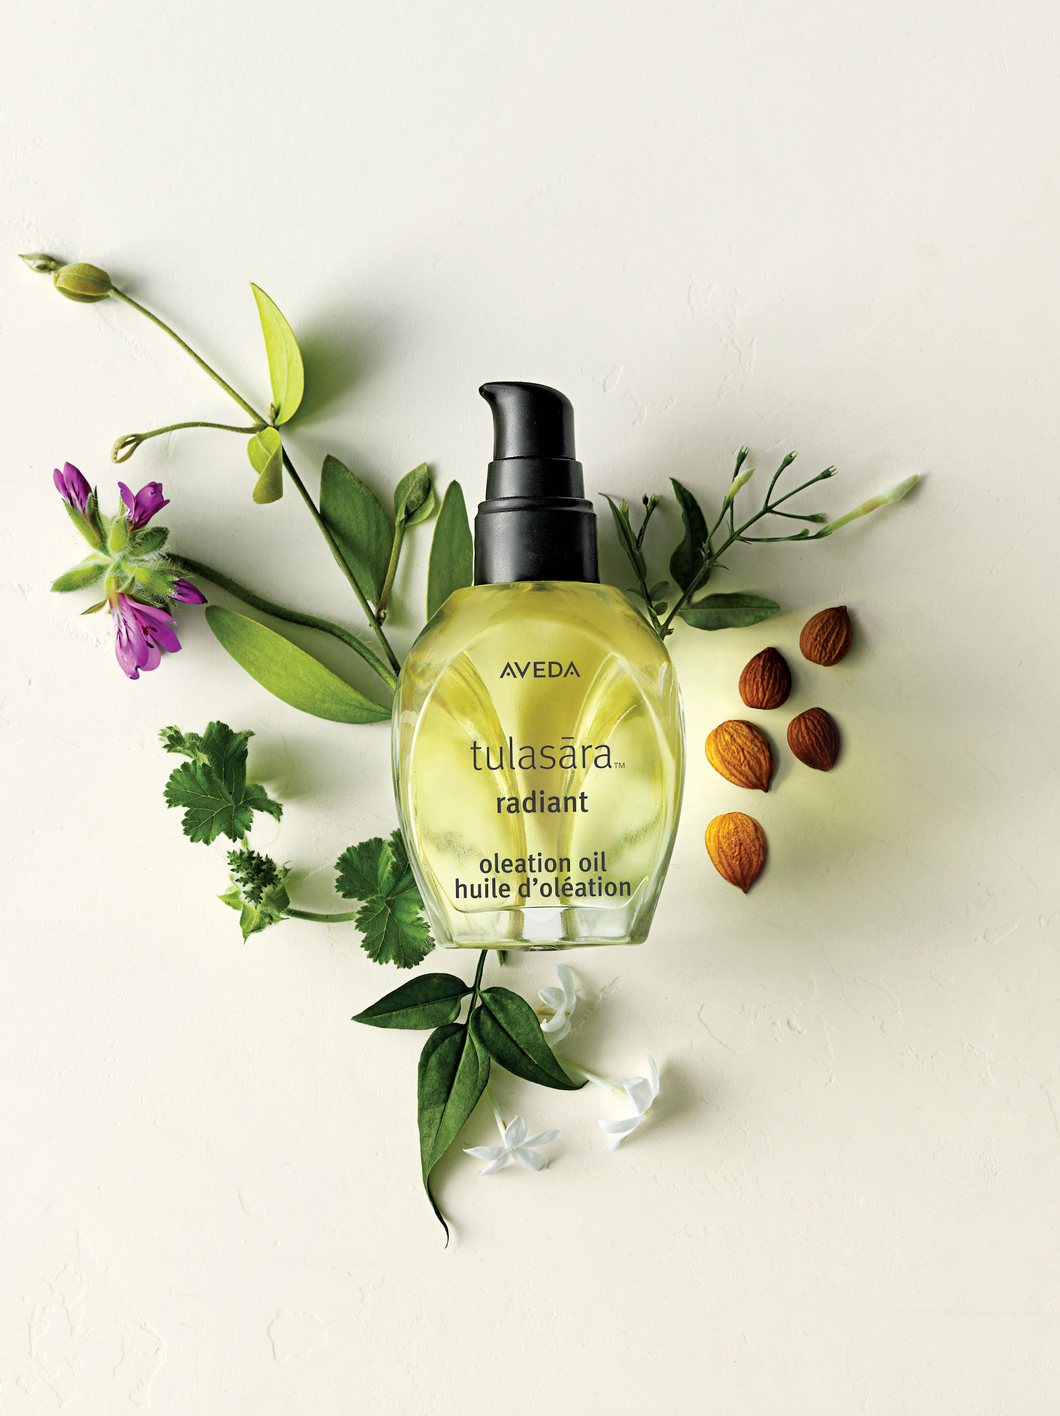 Tulasàra ™ Radiant Oleation Oil